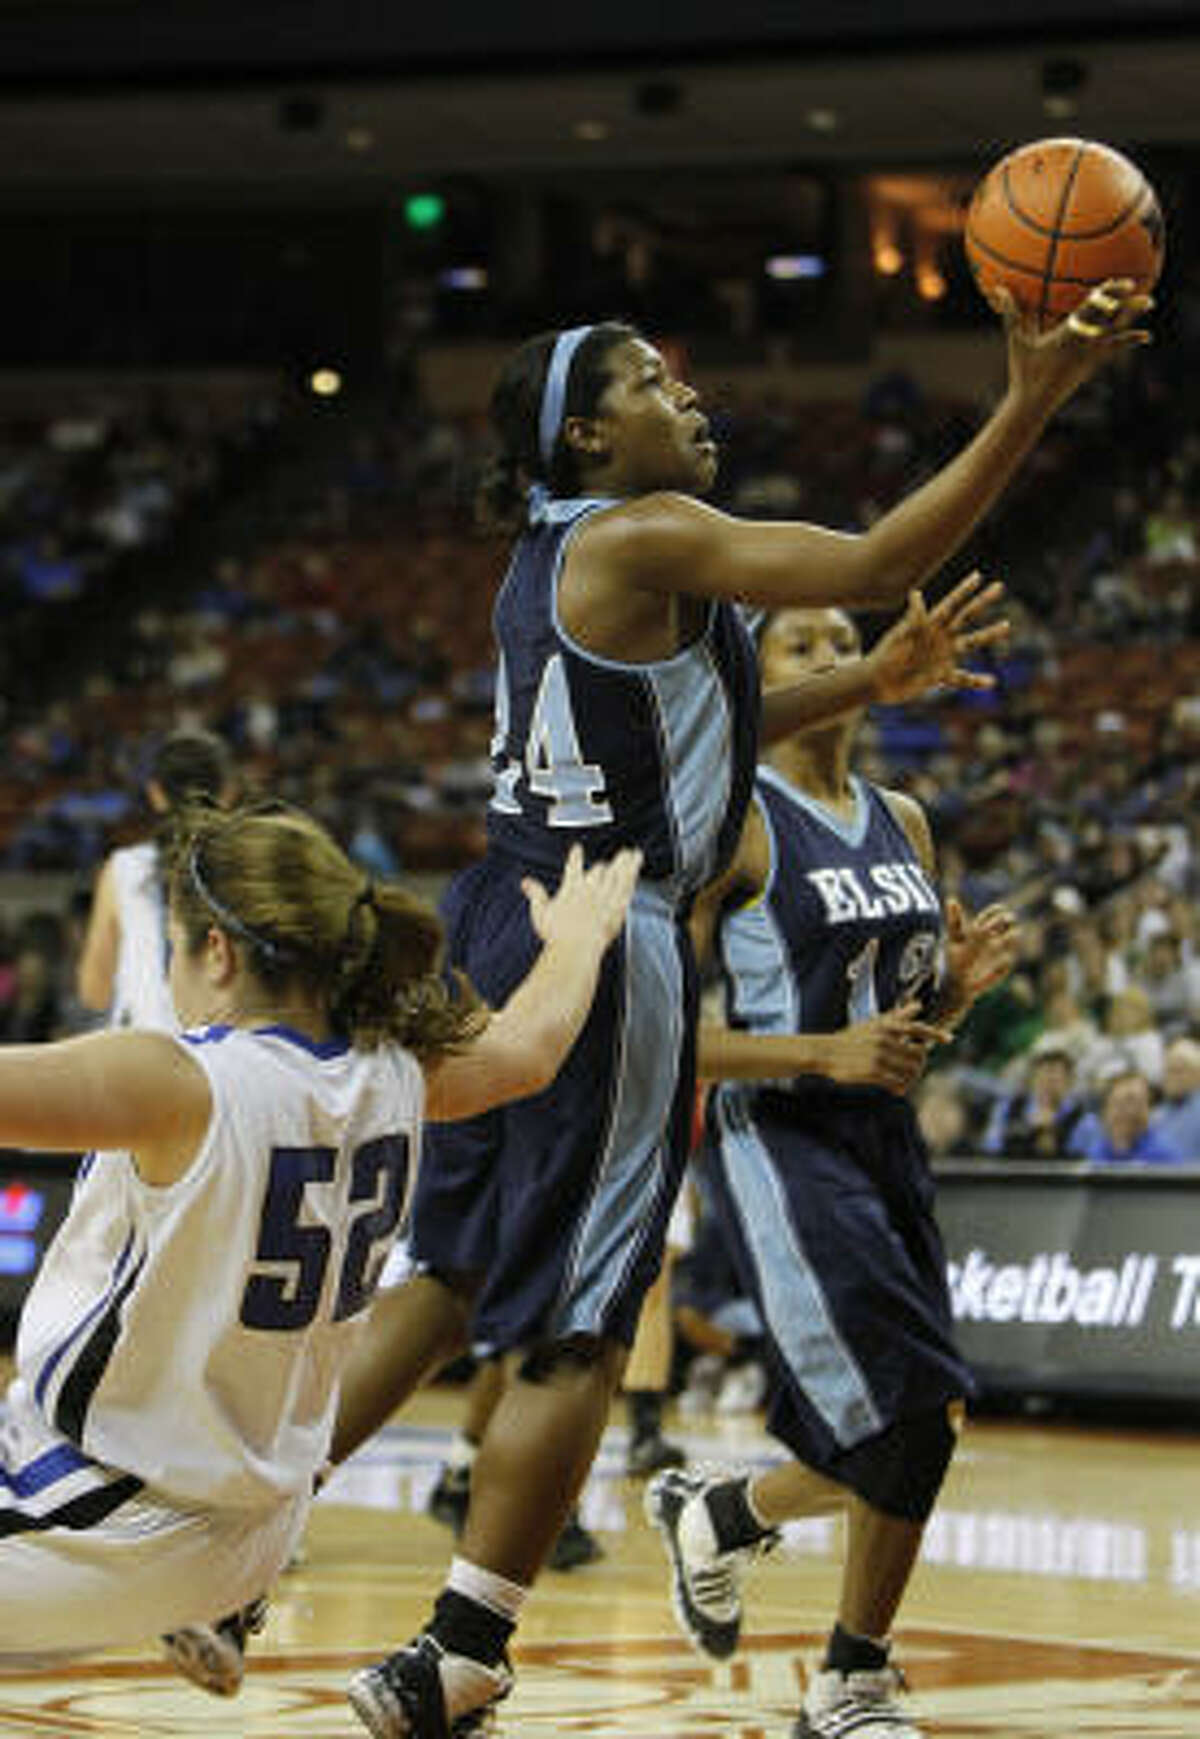 Elsik forward Crystal Porter shoots past a Georgetown player.